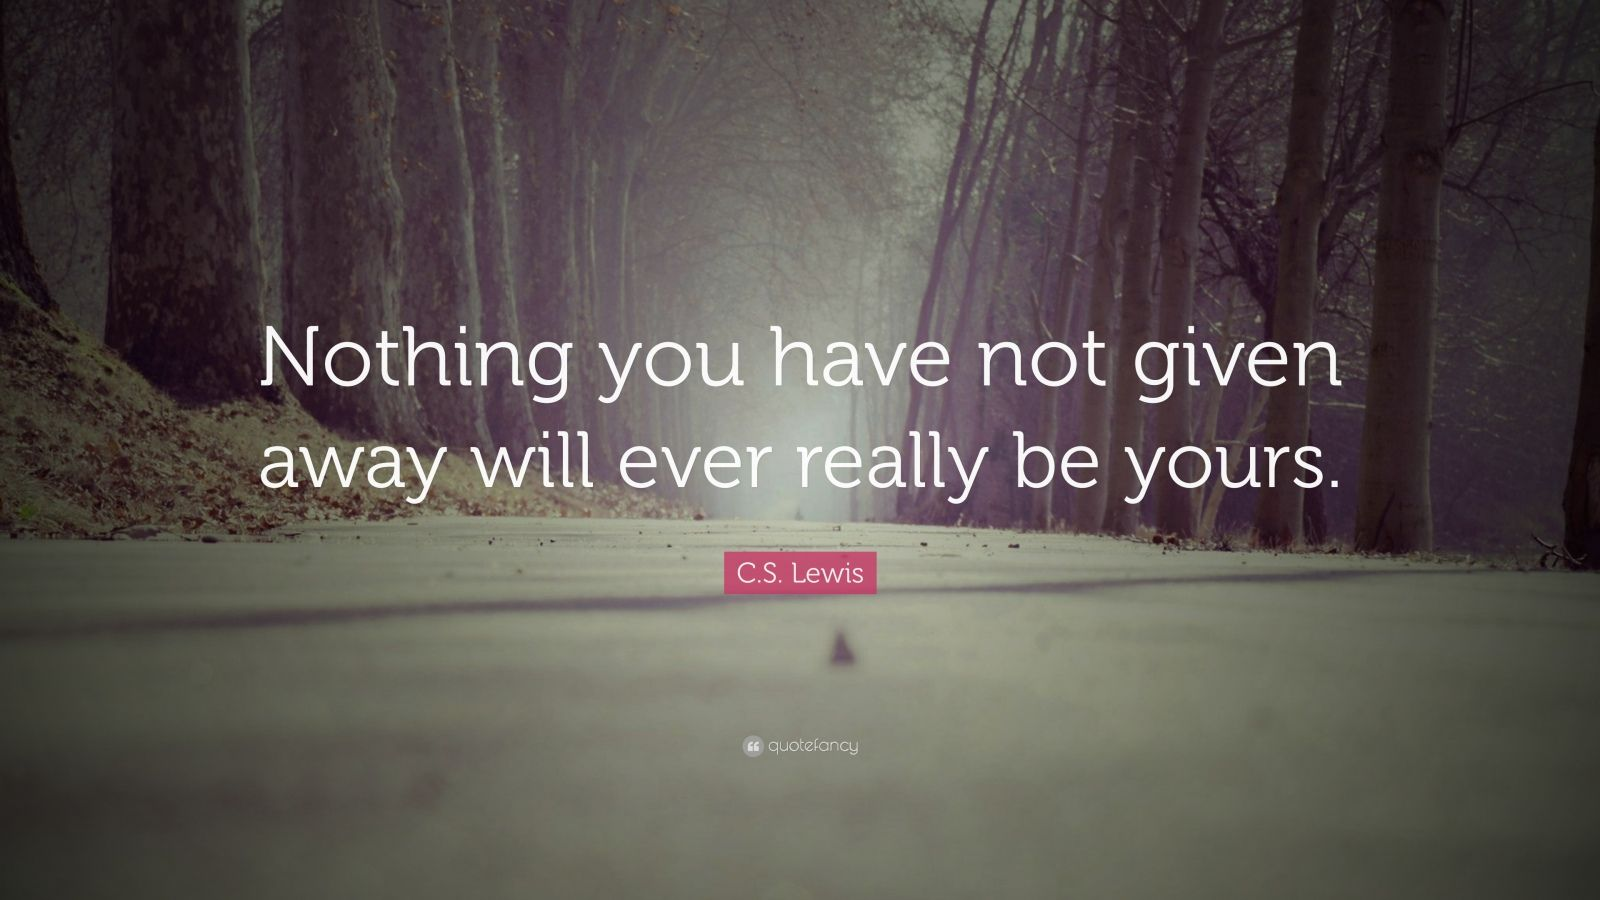 """C. S. Lewis Quote: """"Nothing you have not given away will ever really be yours."""""""